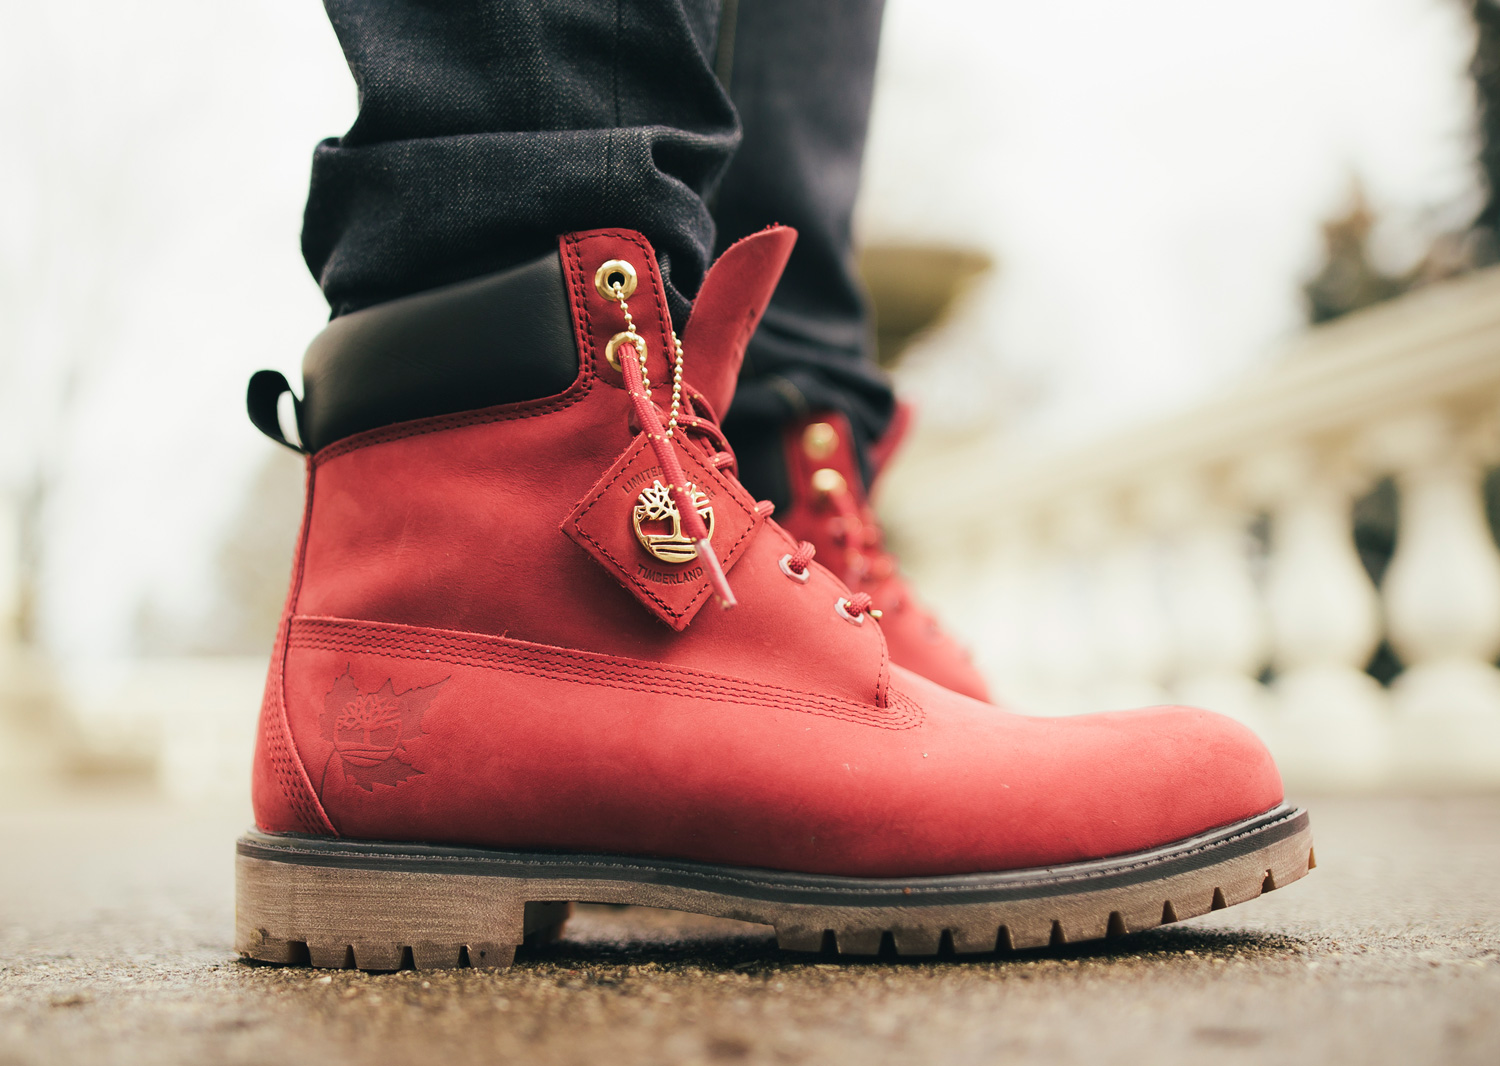 Timberland presents the Red 6